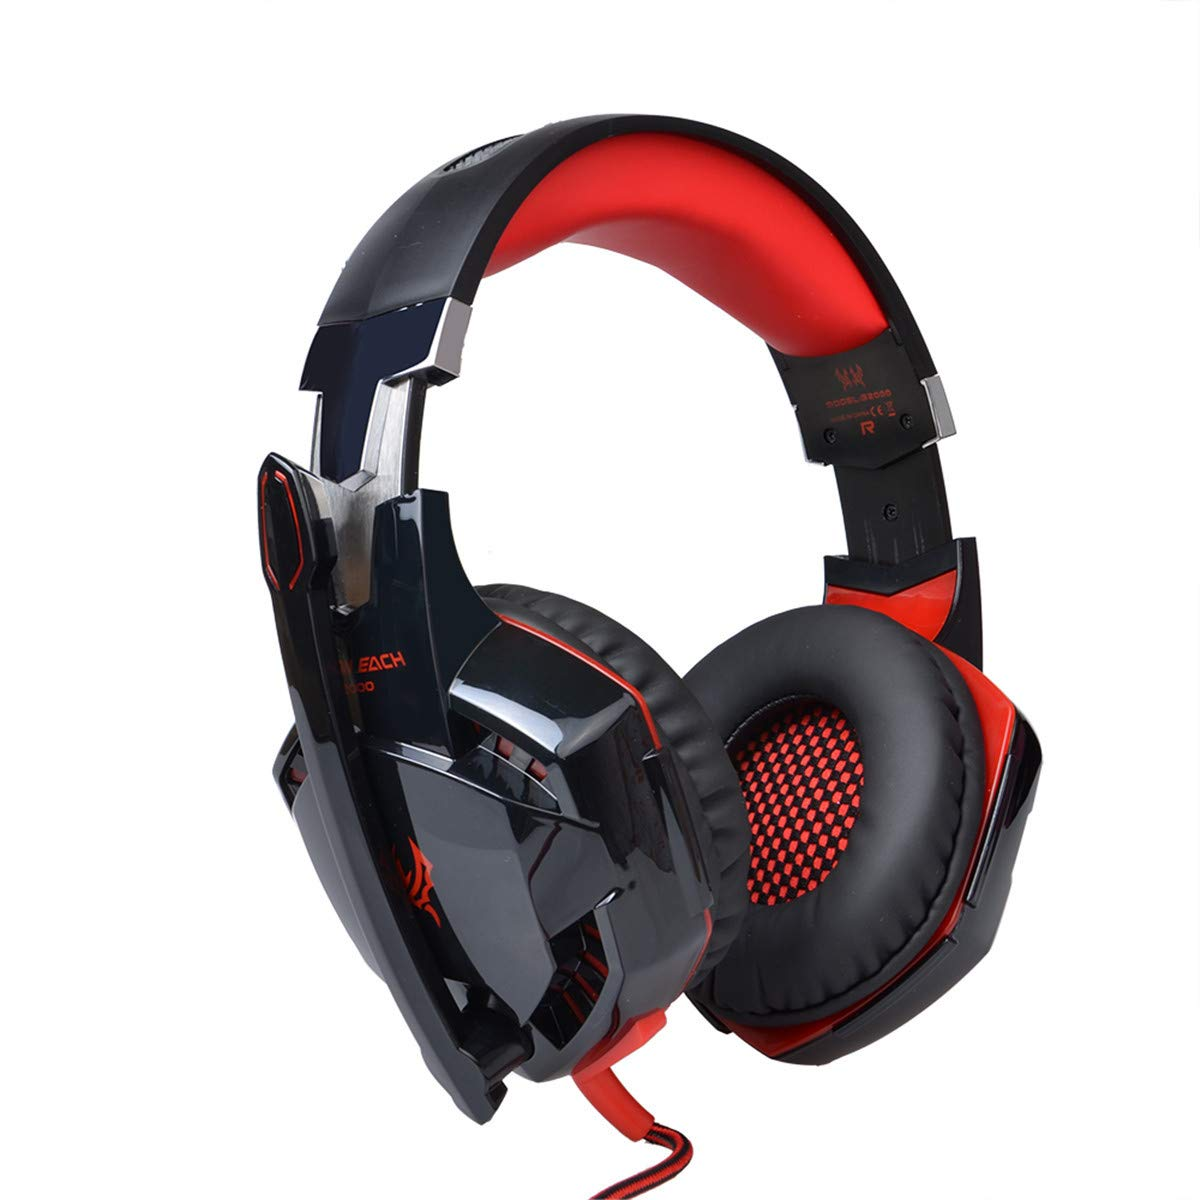 HUAN Gaming Headphones Over-Ear Headphone Headset Headband with Mic, Noise Canceling Gaming Headset (Color : 3)